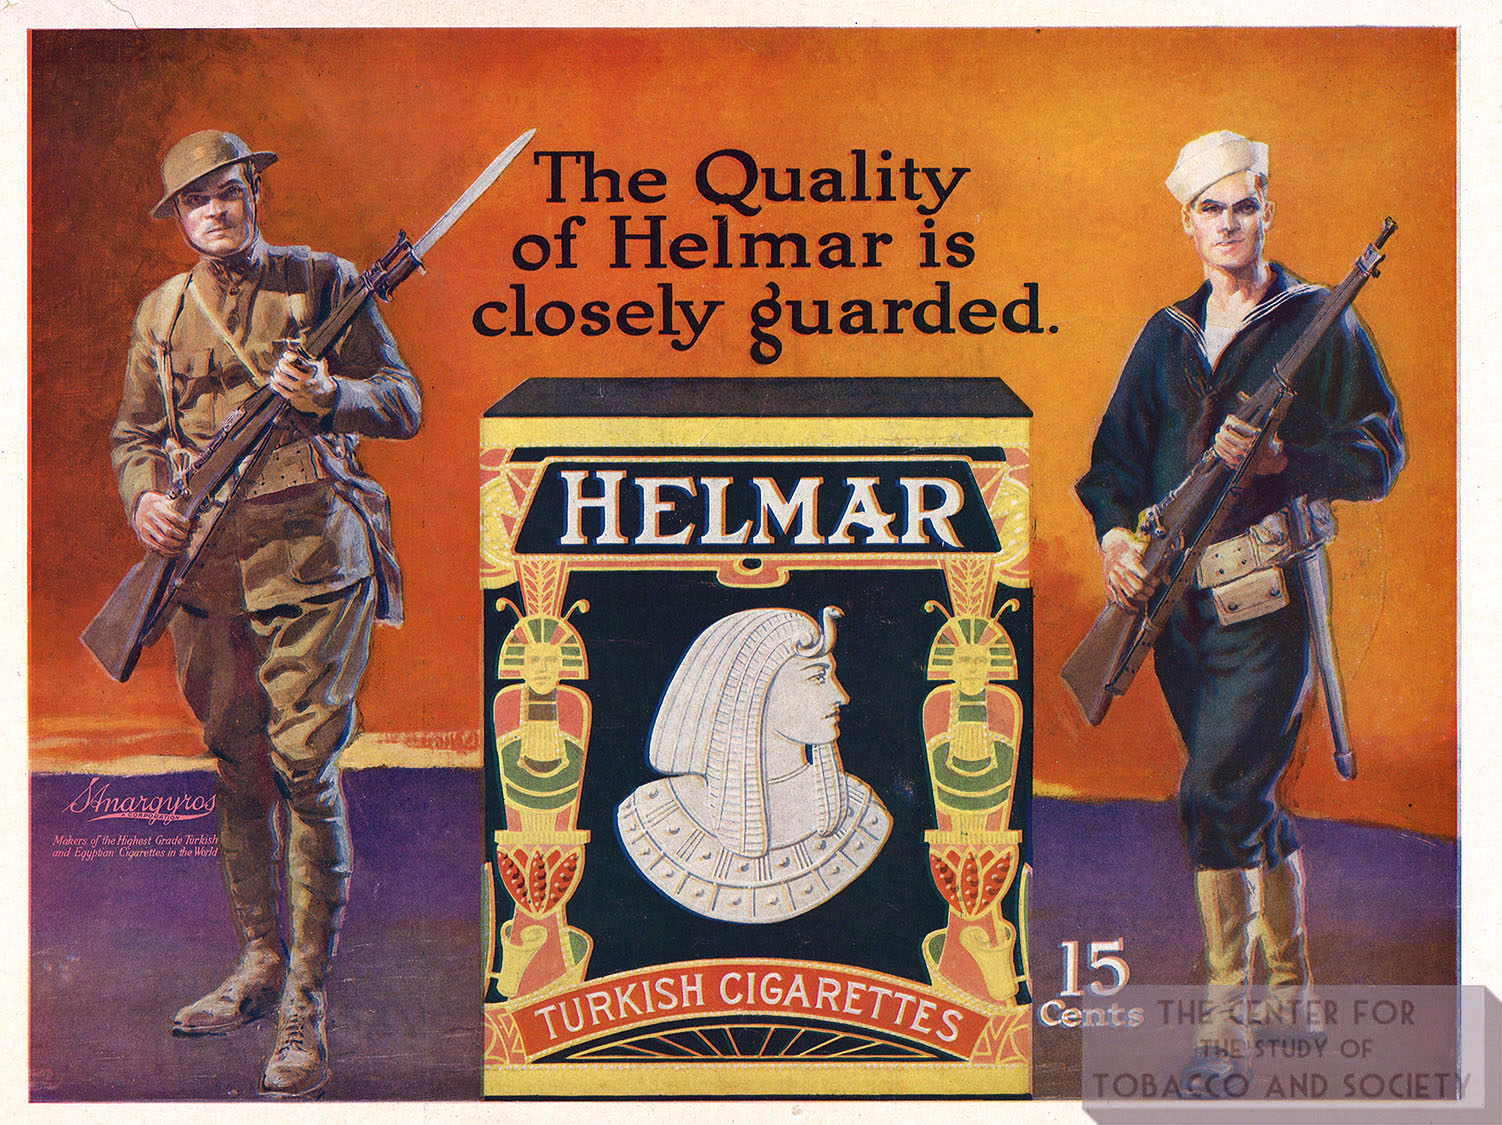 1918 Helmar Ad Quality of Helmar is Closely Guarded